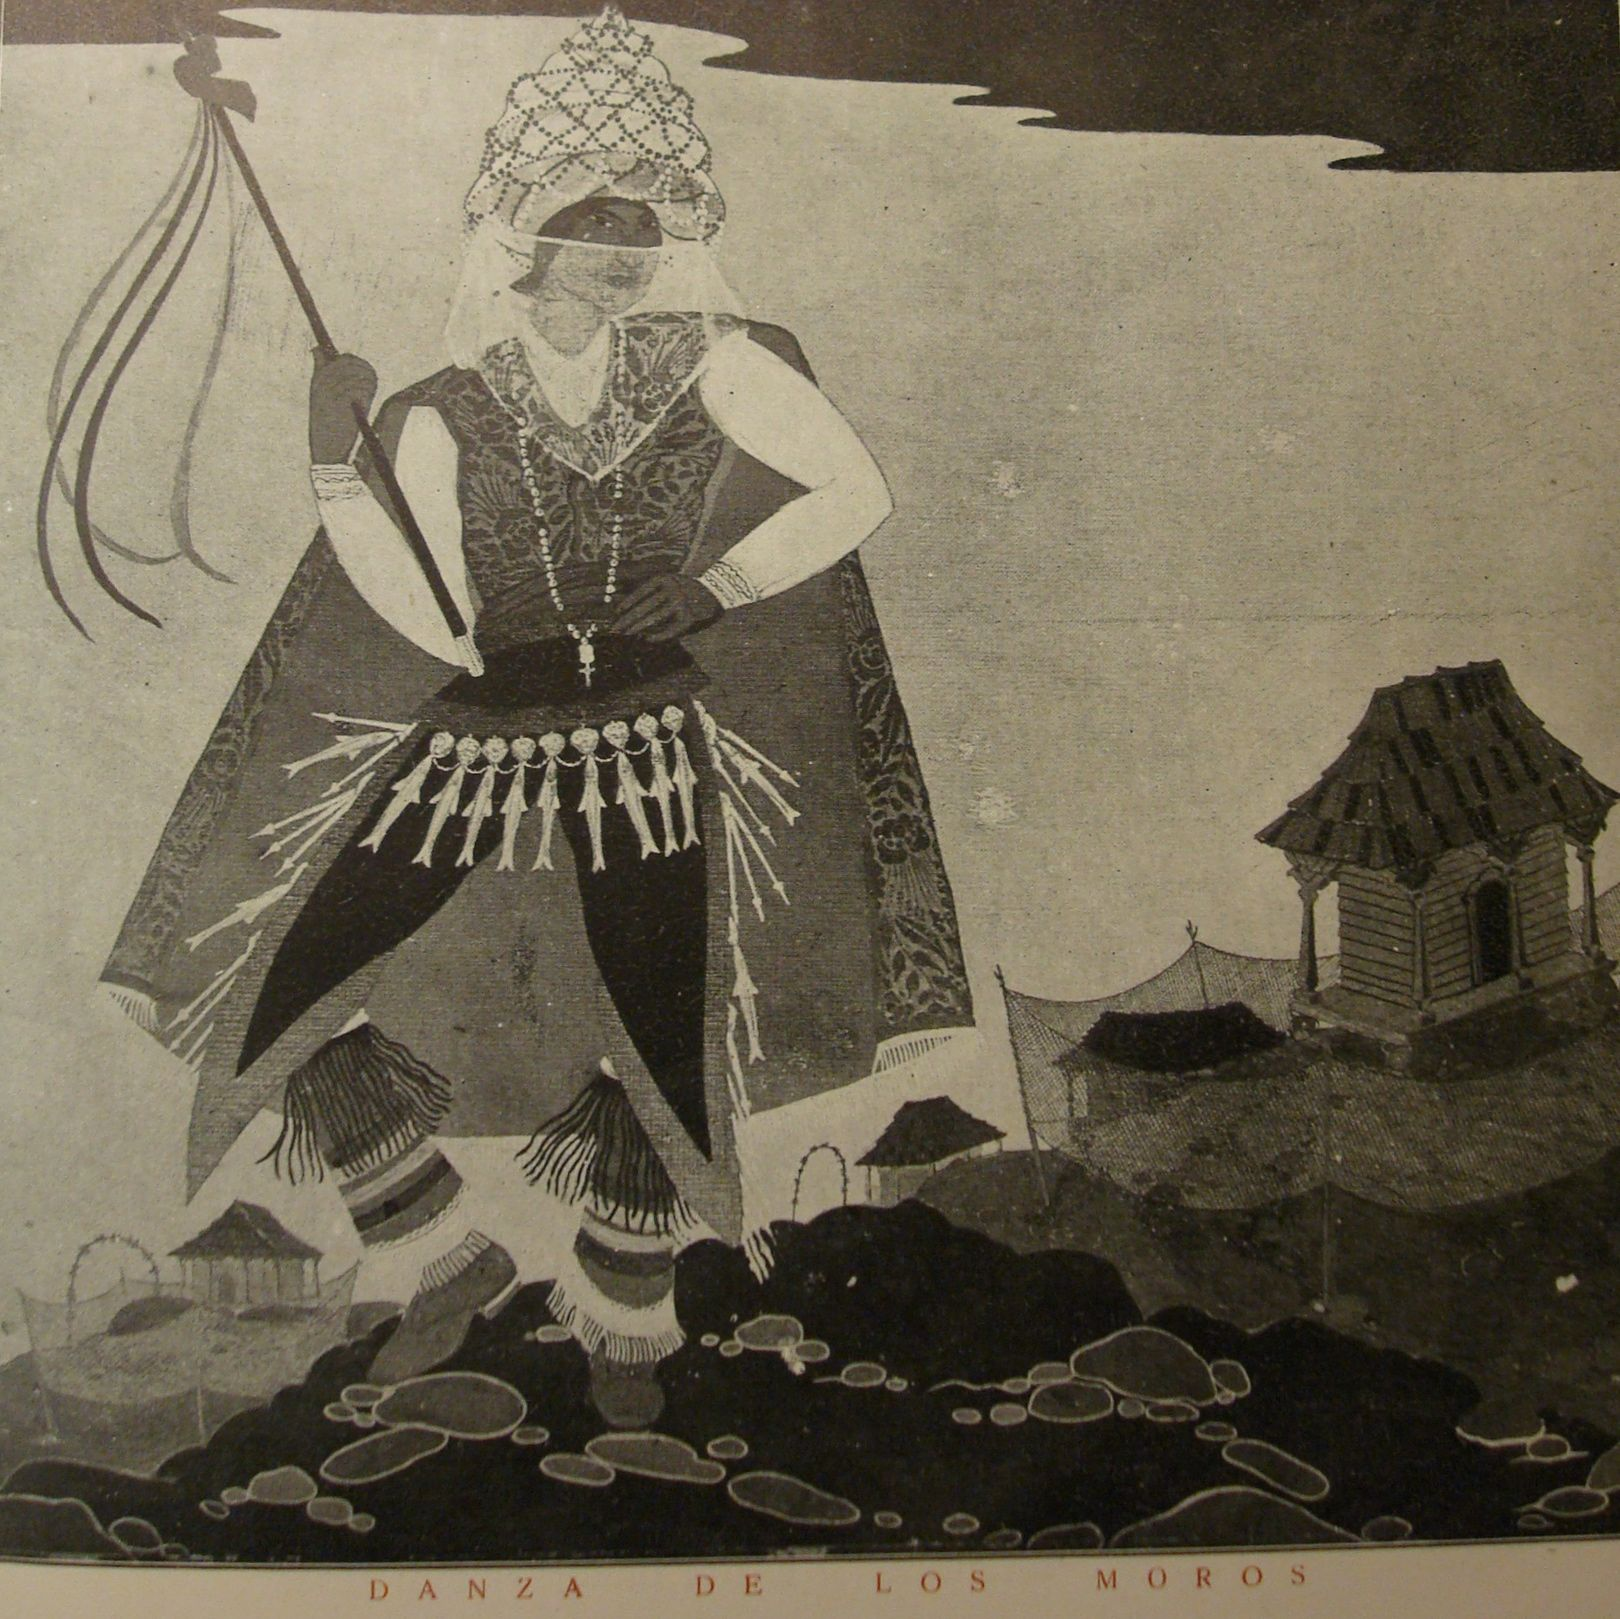 """Carlos González's illustration of the scene """"La danza de los moros"""" (The Dance of the Moors) from the illustrated program of the Murciélago."""